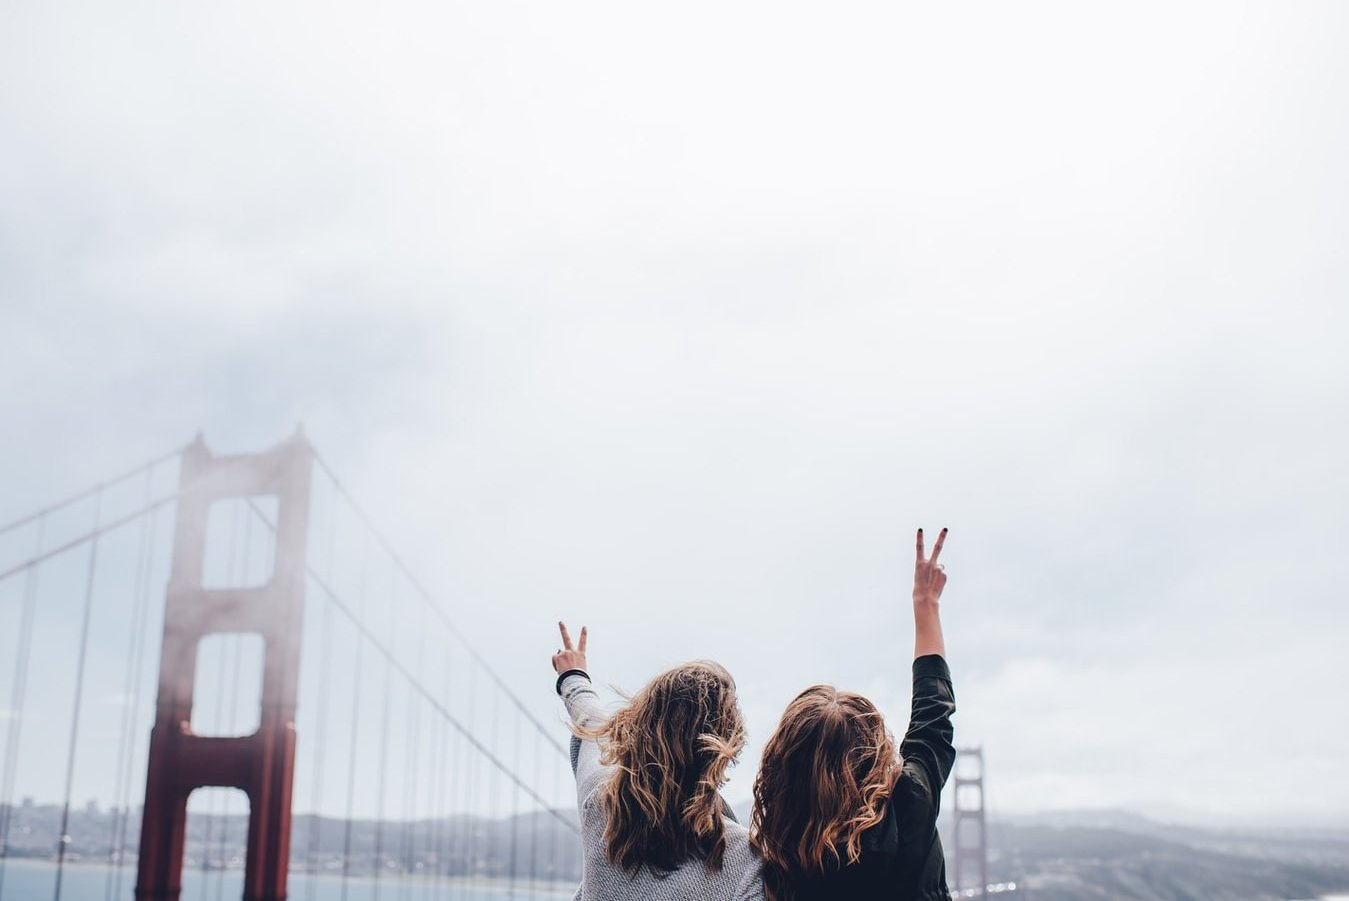 5 Ways to Find a Travel Buddy for Your Next Adventure